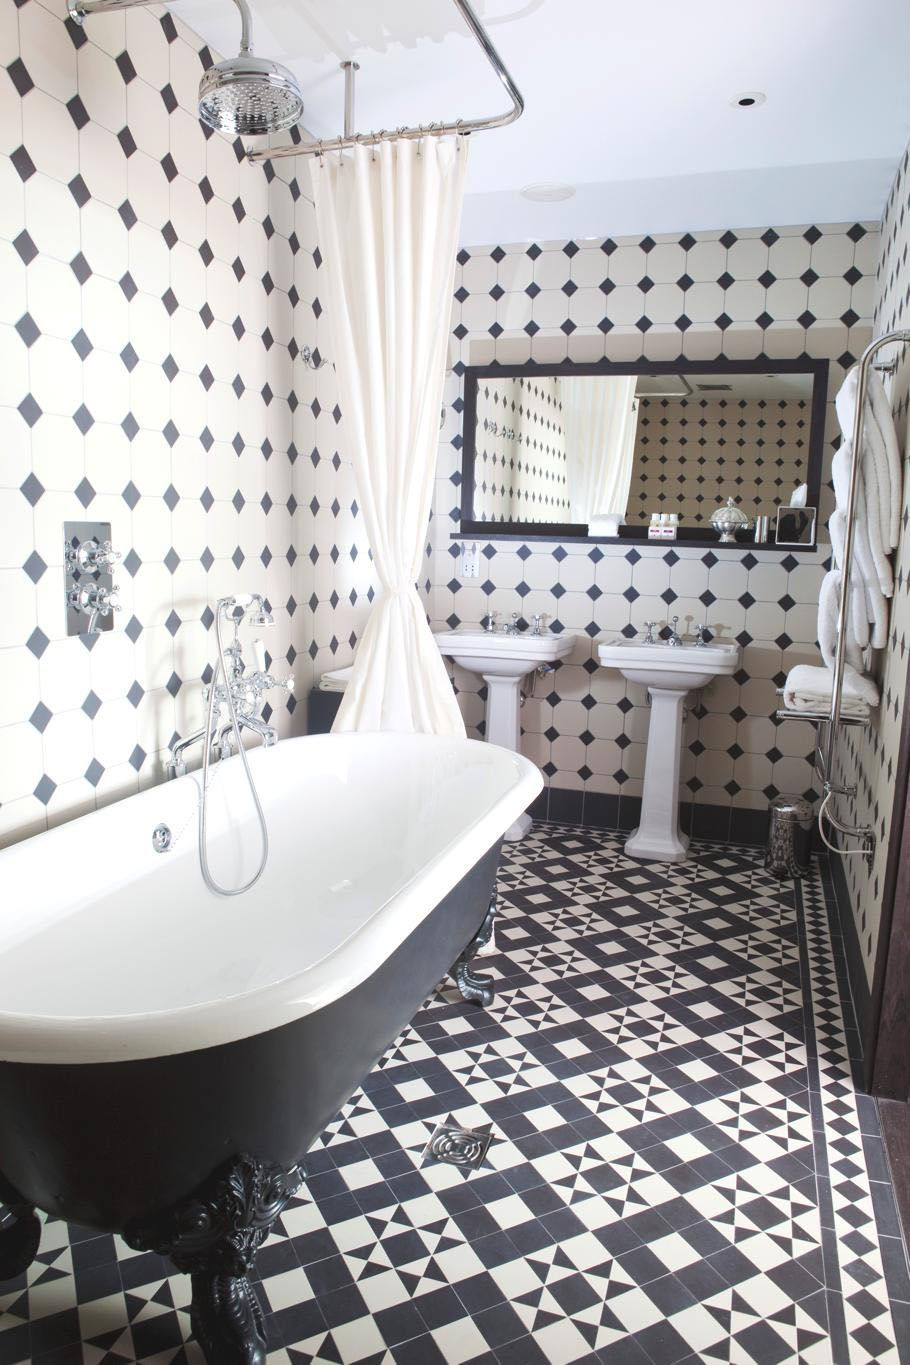 Boundary hotel london converted victorian warehouse with for Boundary bathrooms